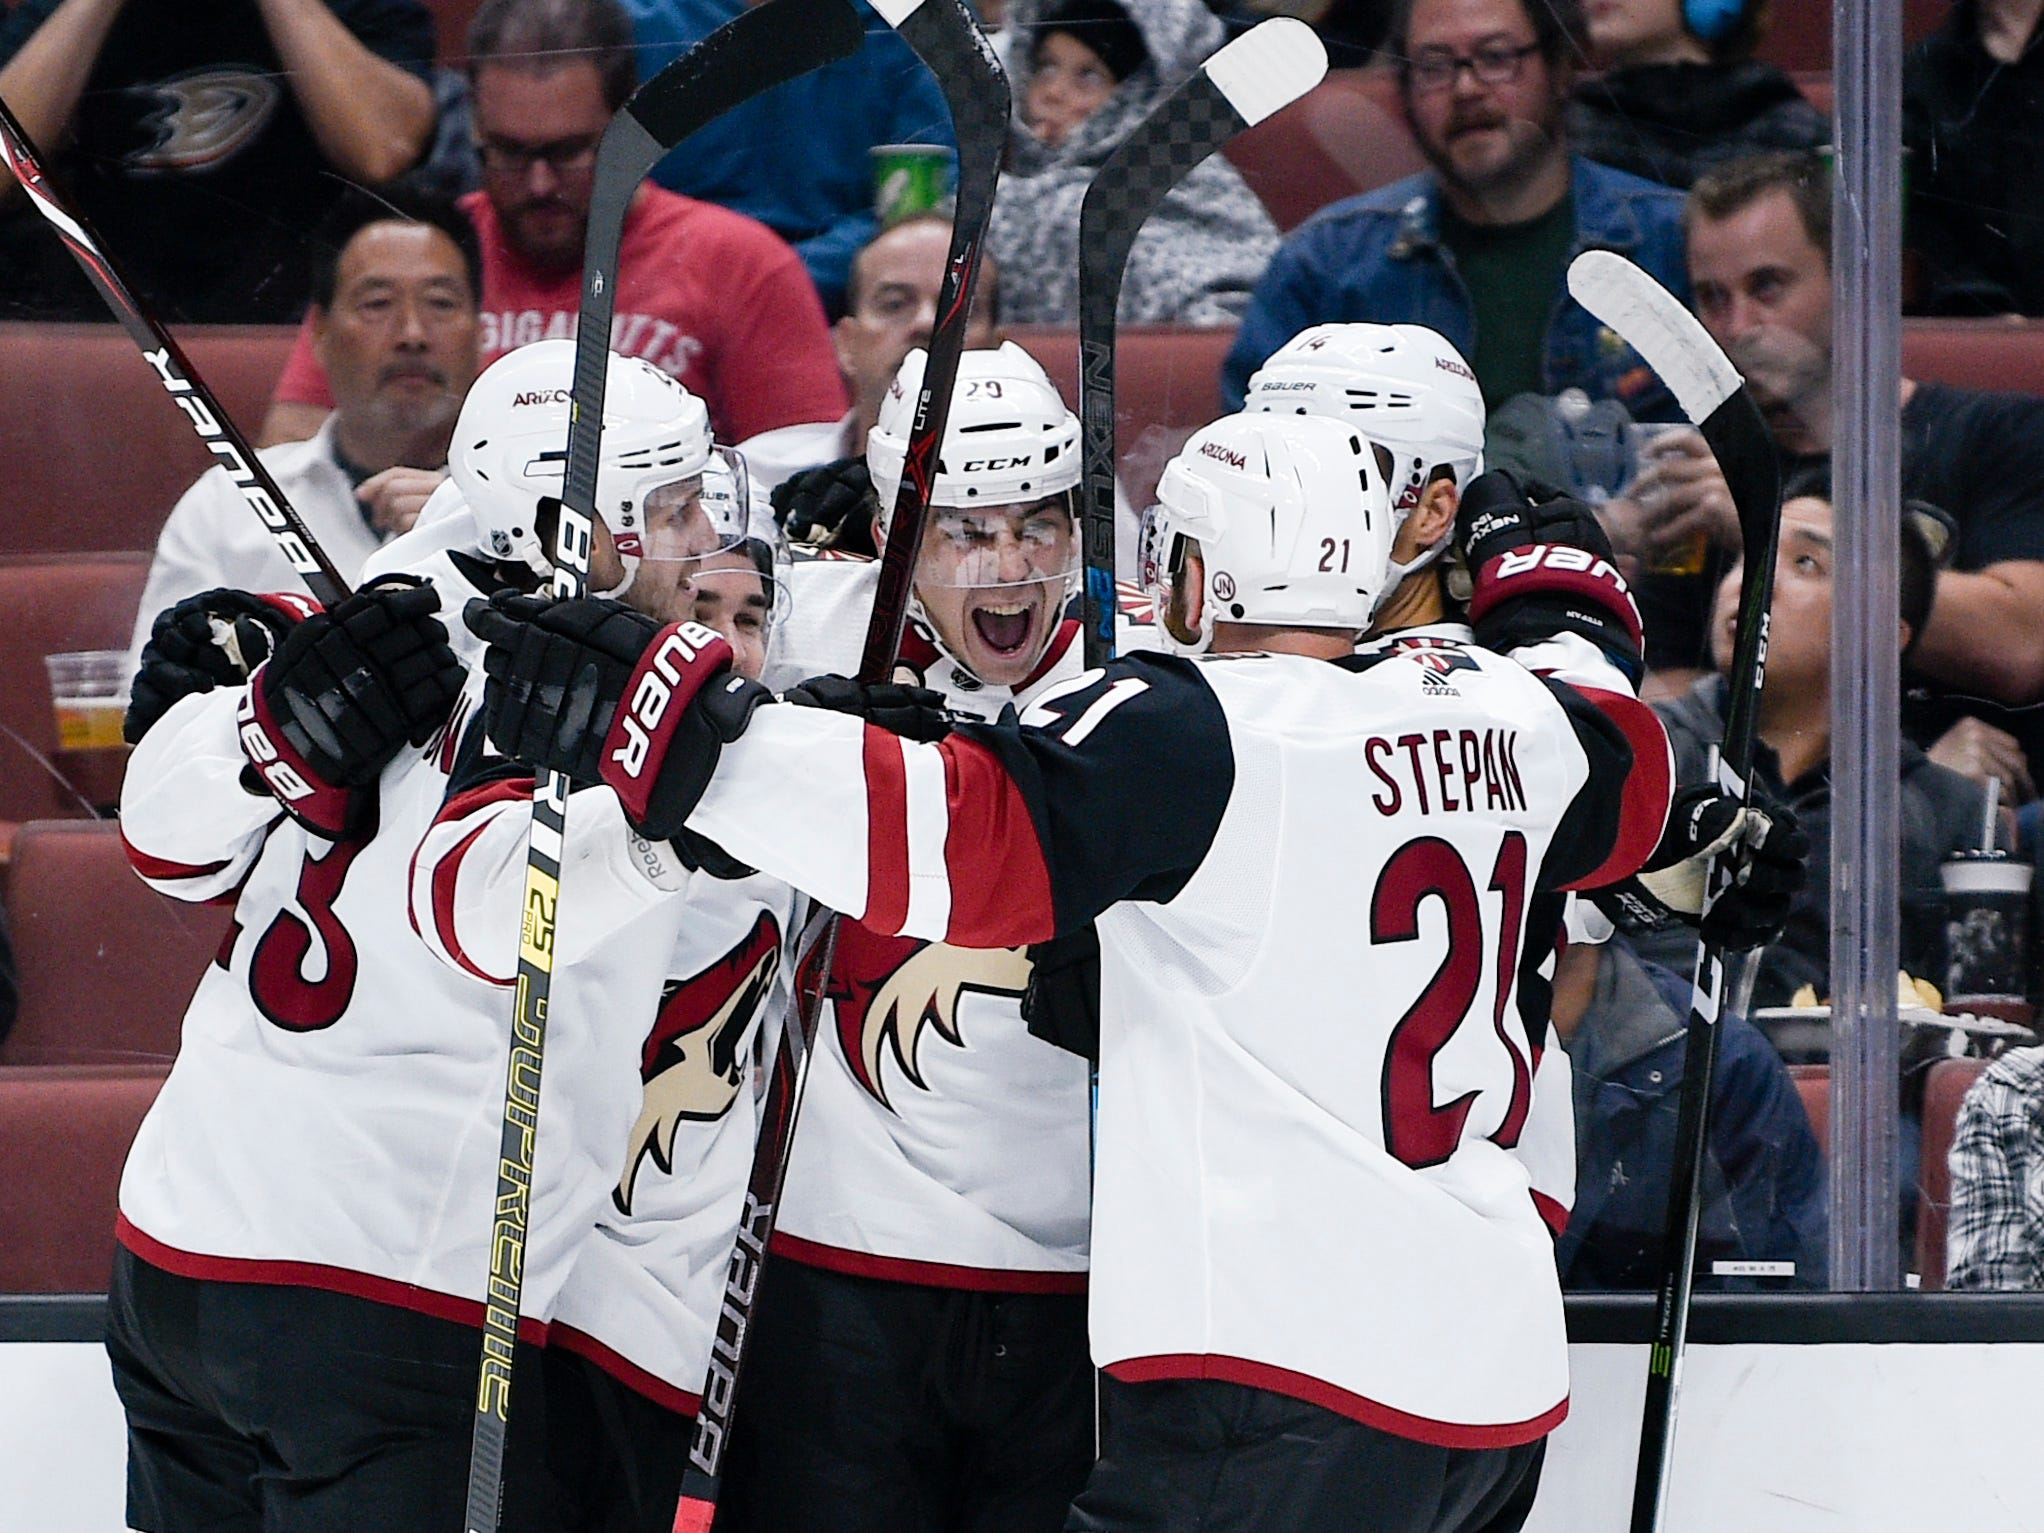 Oct 10, 2018; Anaheim, CA, USA; Arizona Coyotes center Dylan Strome (center) celebrates his goal with his team during the first period against the Anaheim Ducks at Honda Center.